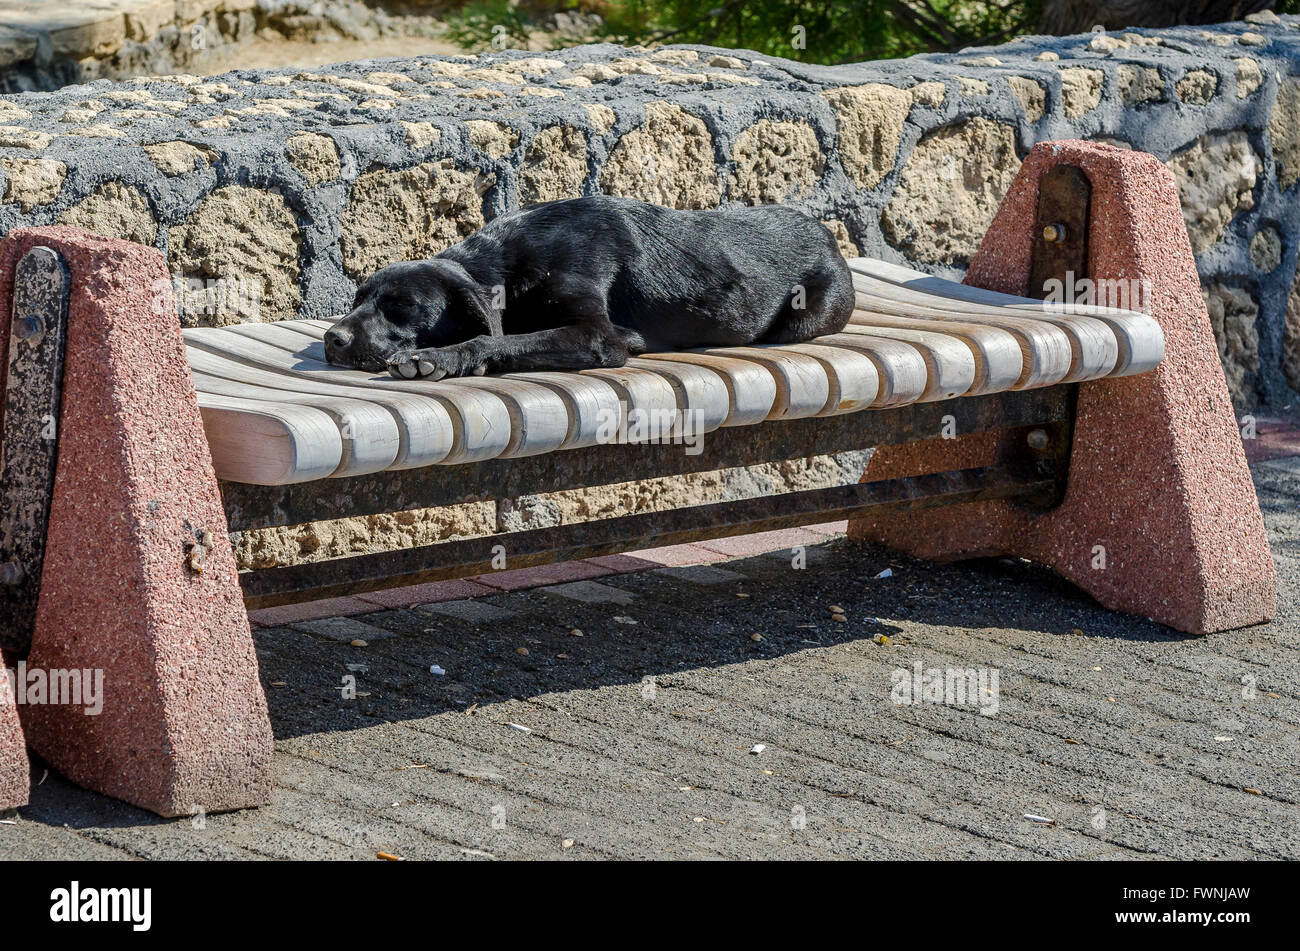 Stray dog sleeping on a bench on a street in the city of Kyrenia, Northern Cyprus. - Stock Image